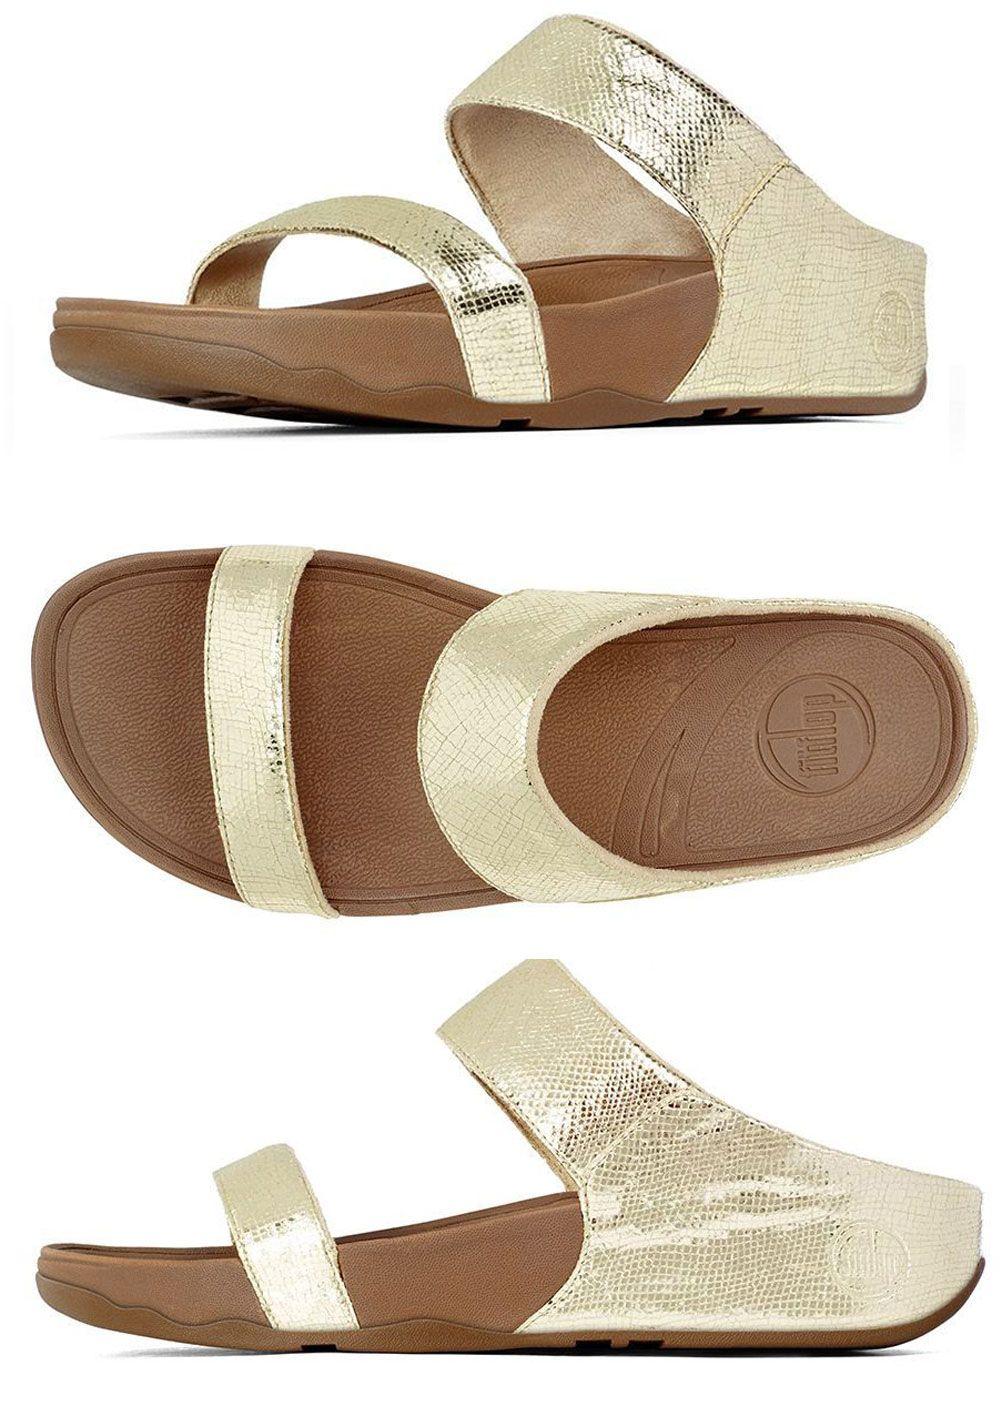 c2246e646 FitFlop Lulu Lustra Slide Sandals in Pale Gold - Free Shipping on Purchase  of 95